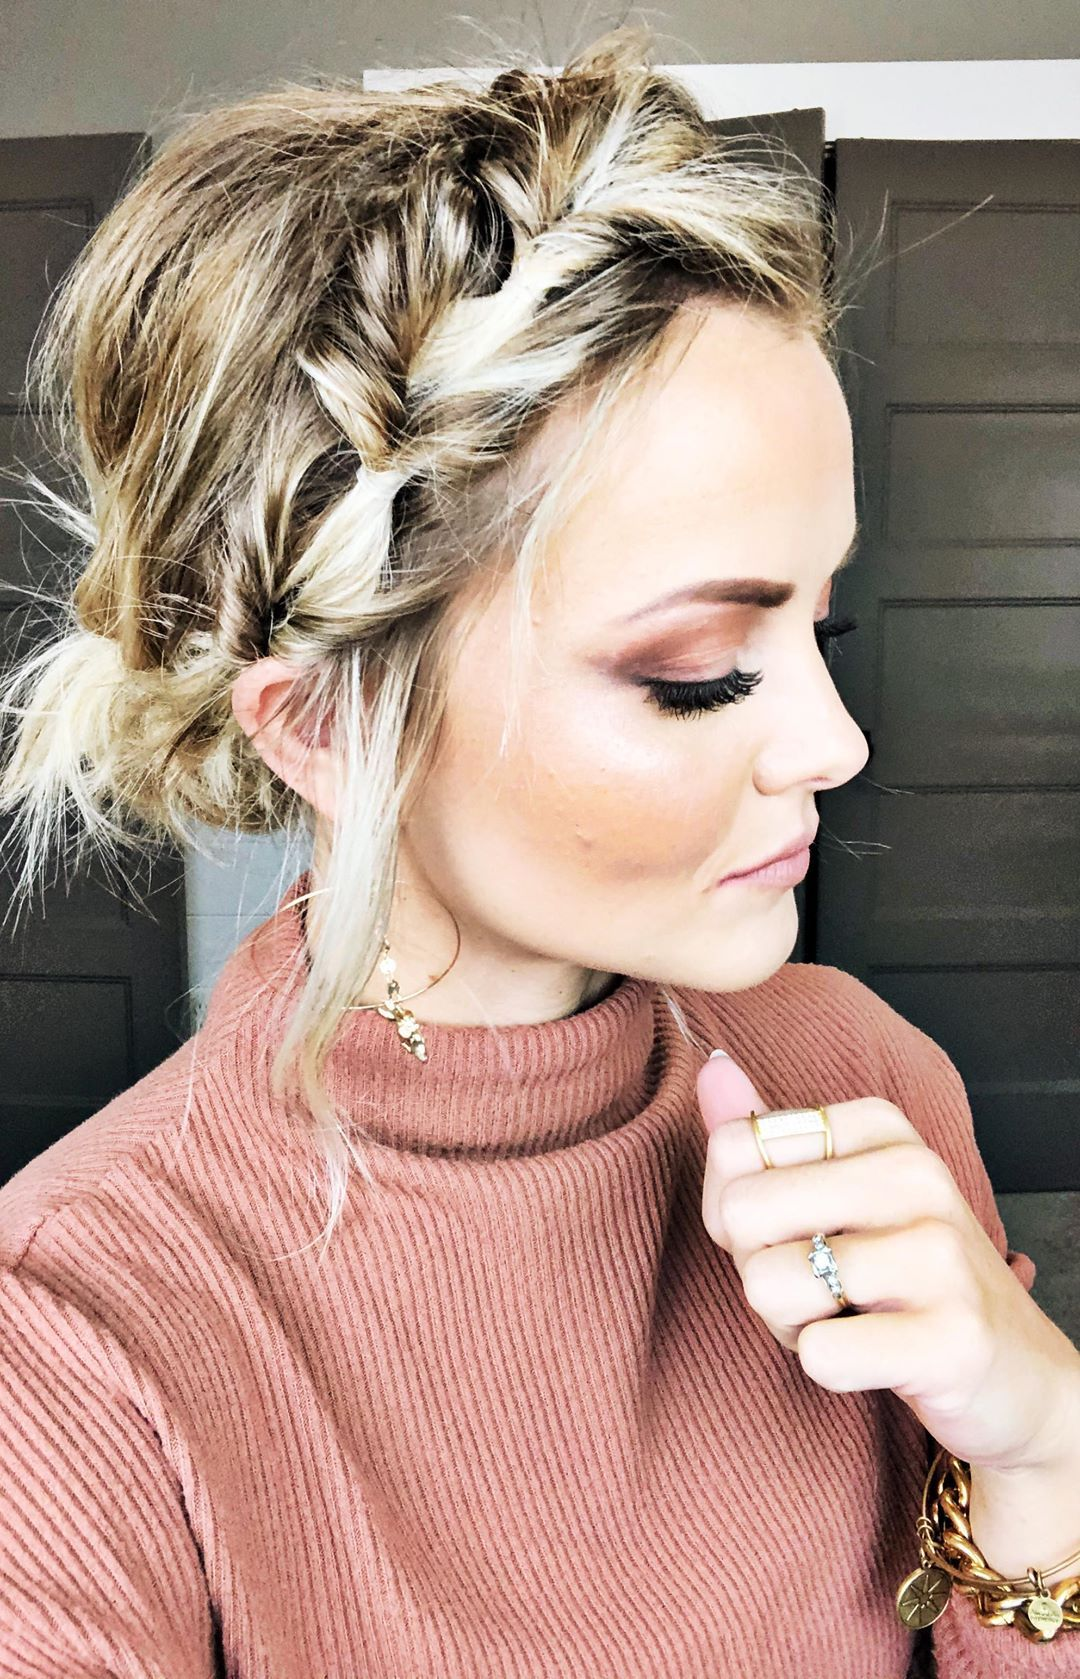 Harmony Beus On Instagram Don T You Ever Want A Hairstyle That Is Easy And Quick That Doesn T End Up In A Top No In 2020 Faux Braids Long Hair Styles Hair